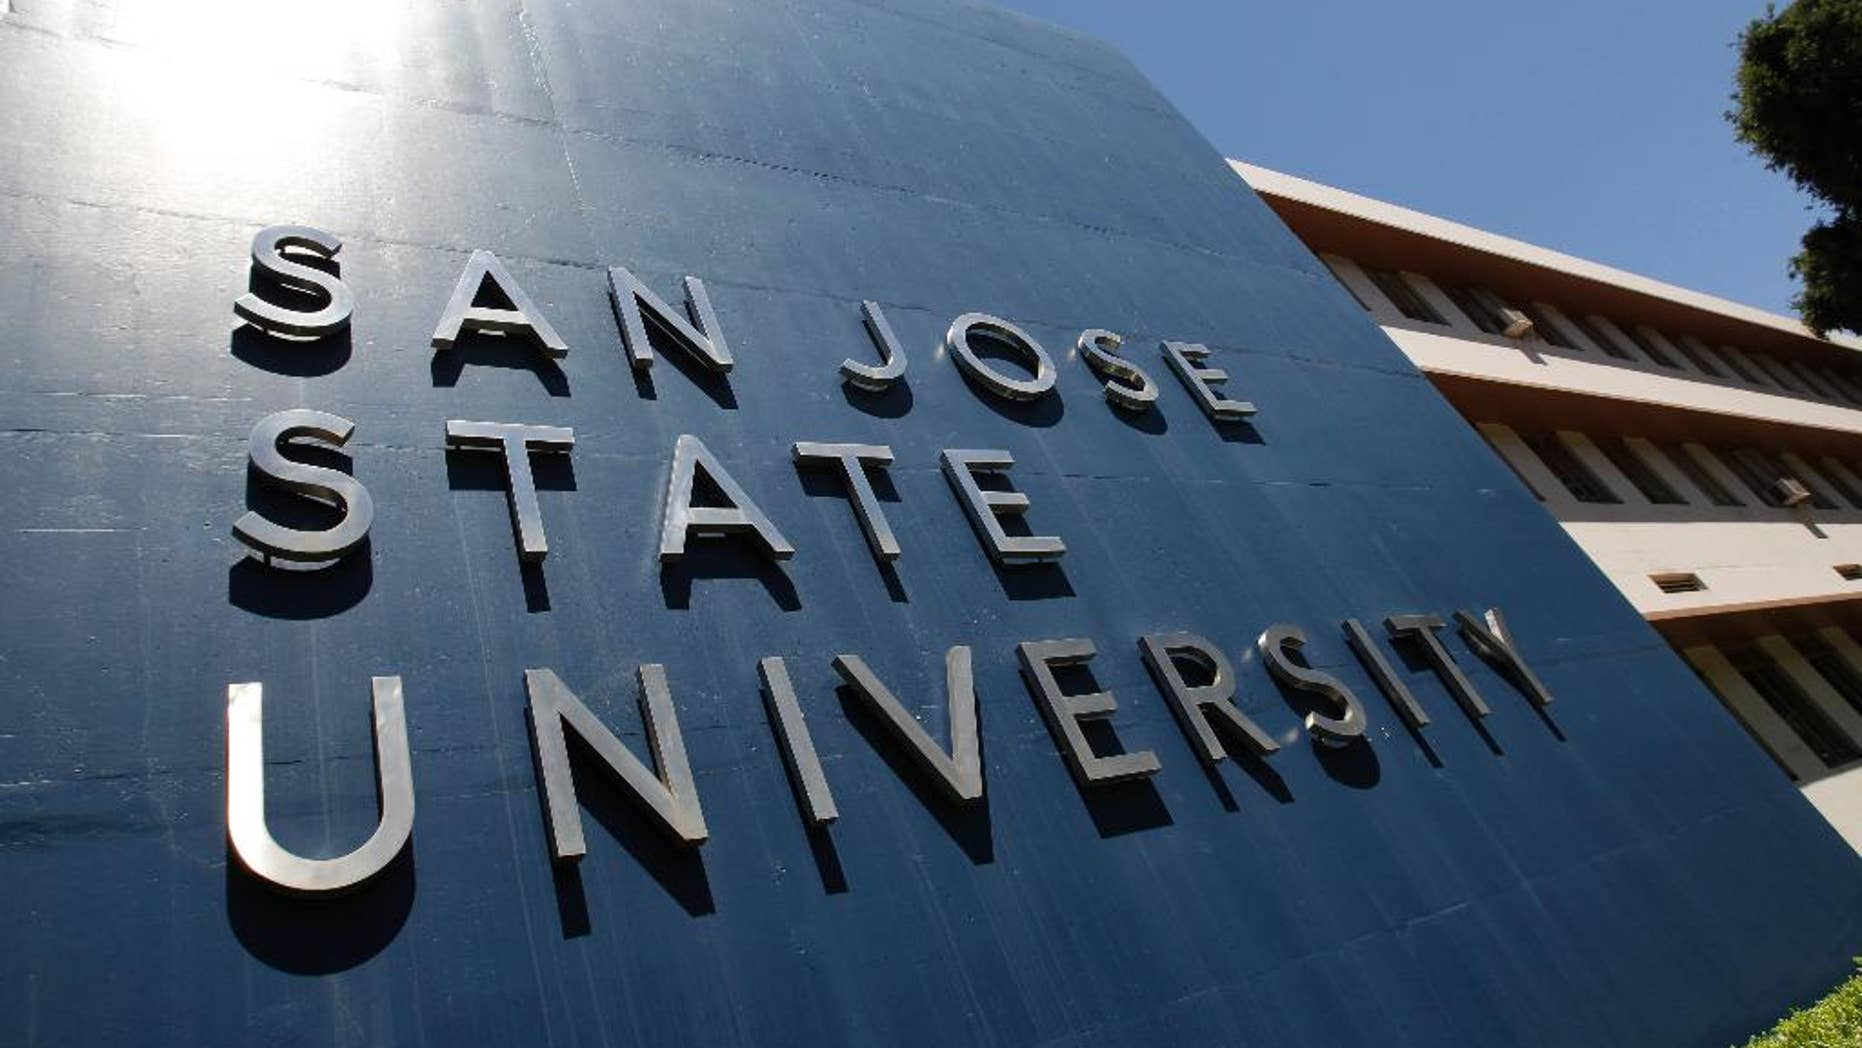 File - In this June 30, 2011 file photo is an exterior view of San Jose State University in San Jose, Calif. When a water polo player at San Jose State was accused of sexually assaulting two women over Labor Day weekend, the university acted decisively. The athlete was moved from his freshman dorm into a staff housing facility, temporarily suspended and barred from campus. (AP Photo/Paul Sakuma, File)